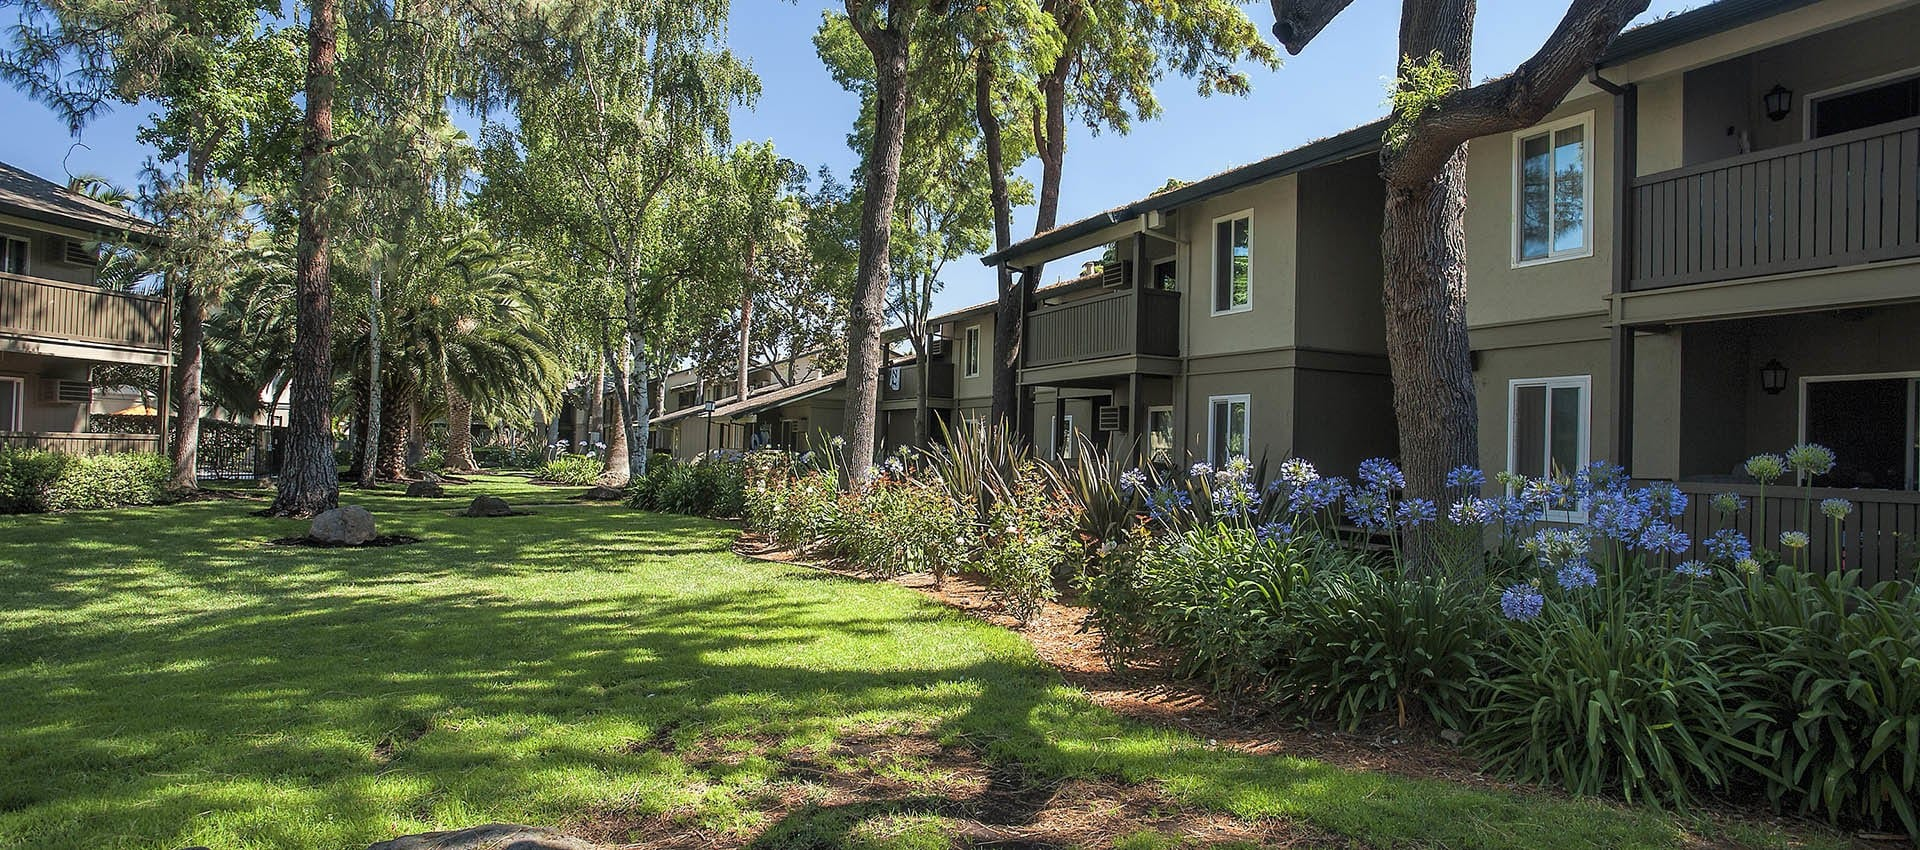 Lawn at Villa Palms Apartment Homes in Livermore, California